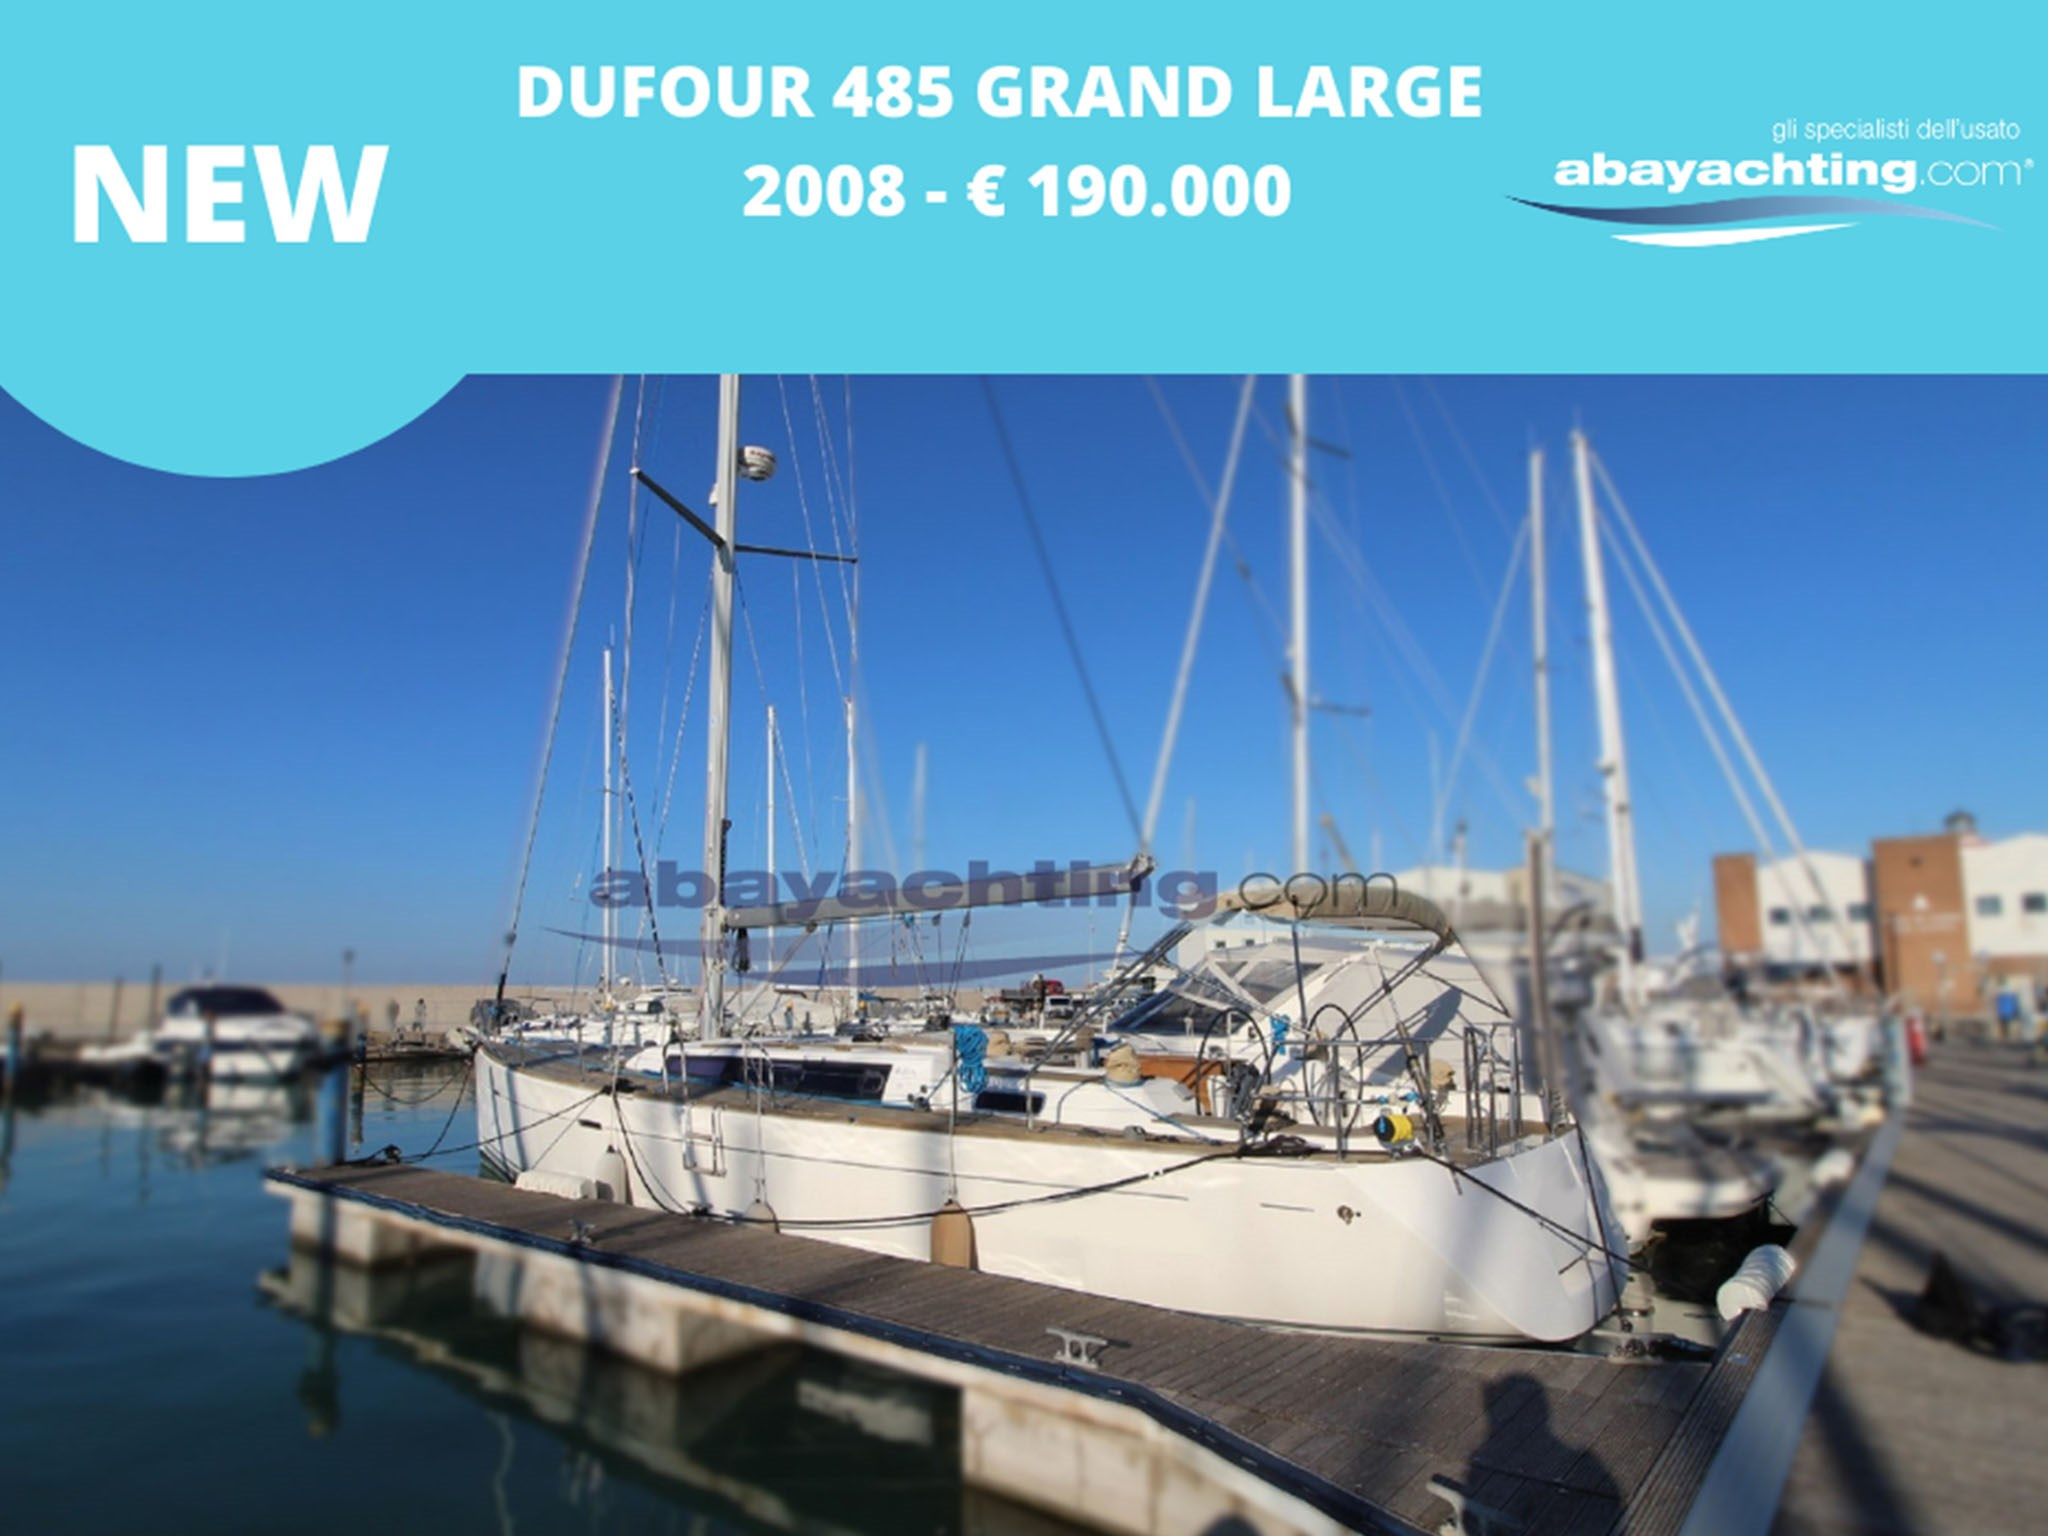 New arrival Dufour 485 Grand Large